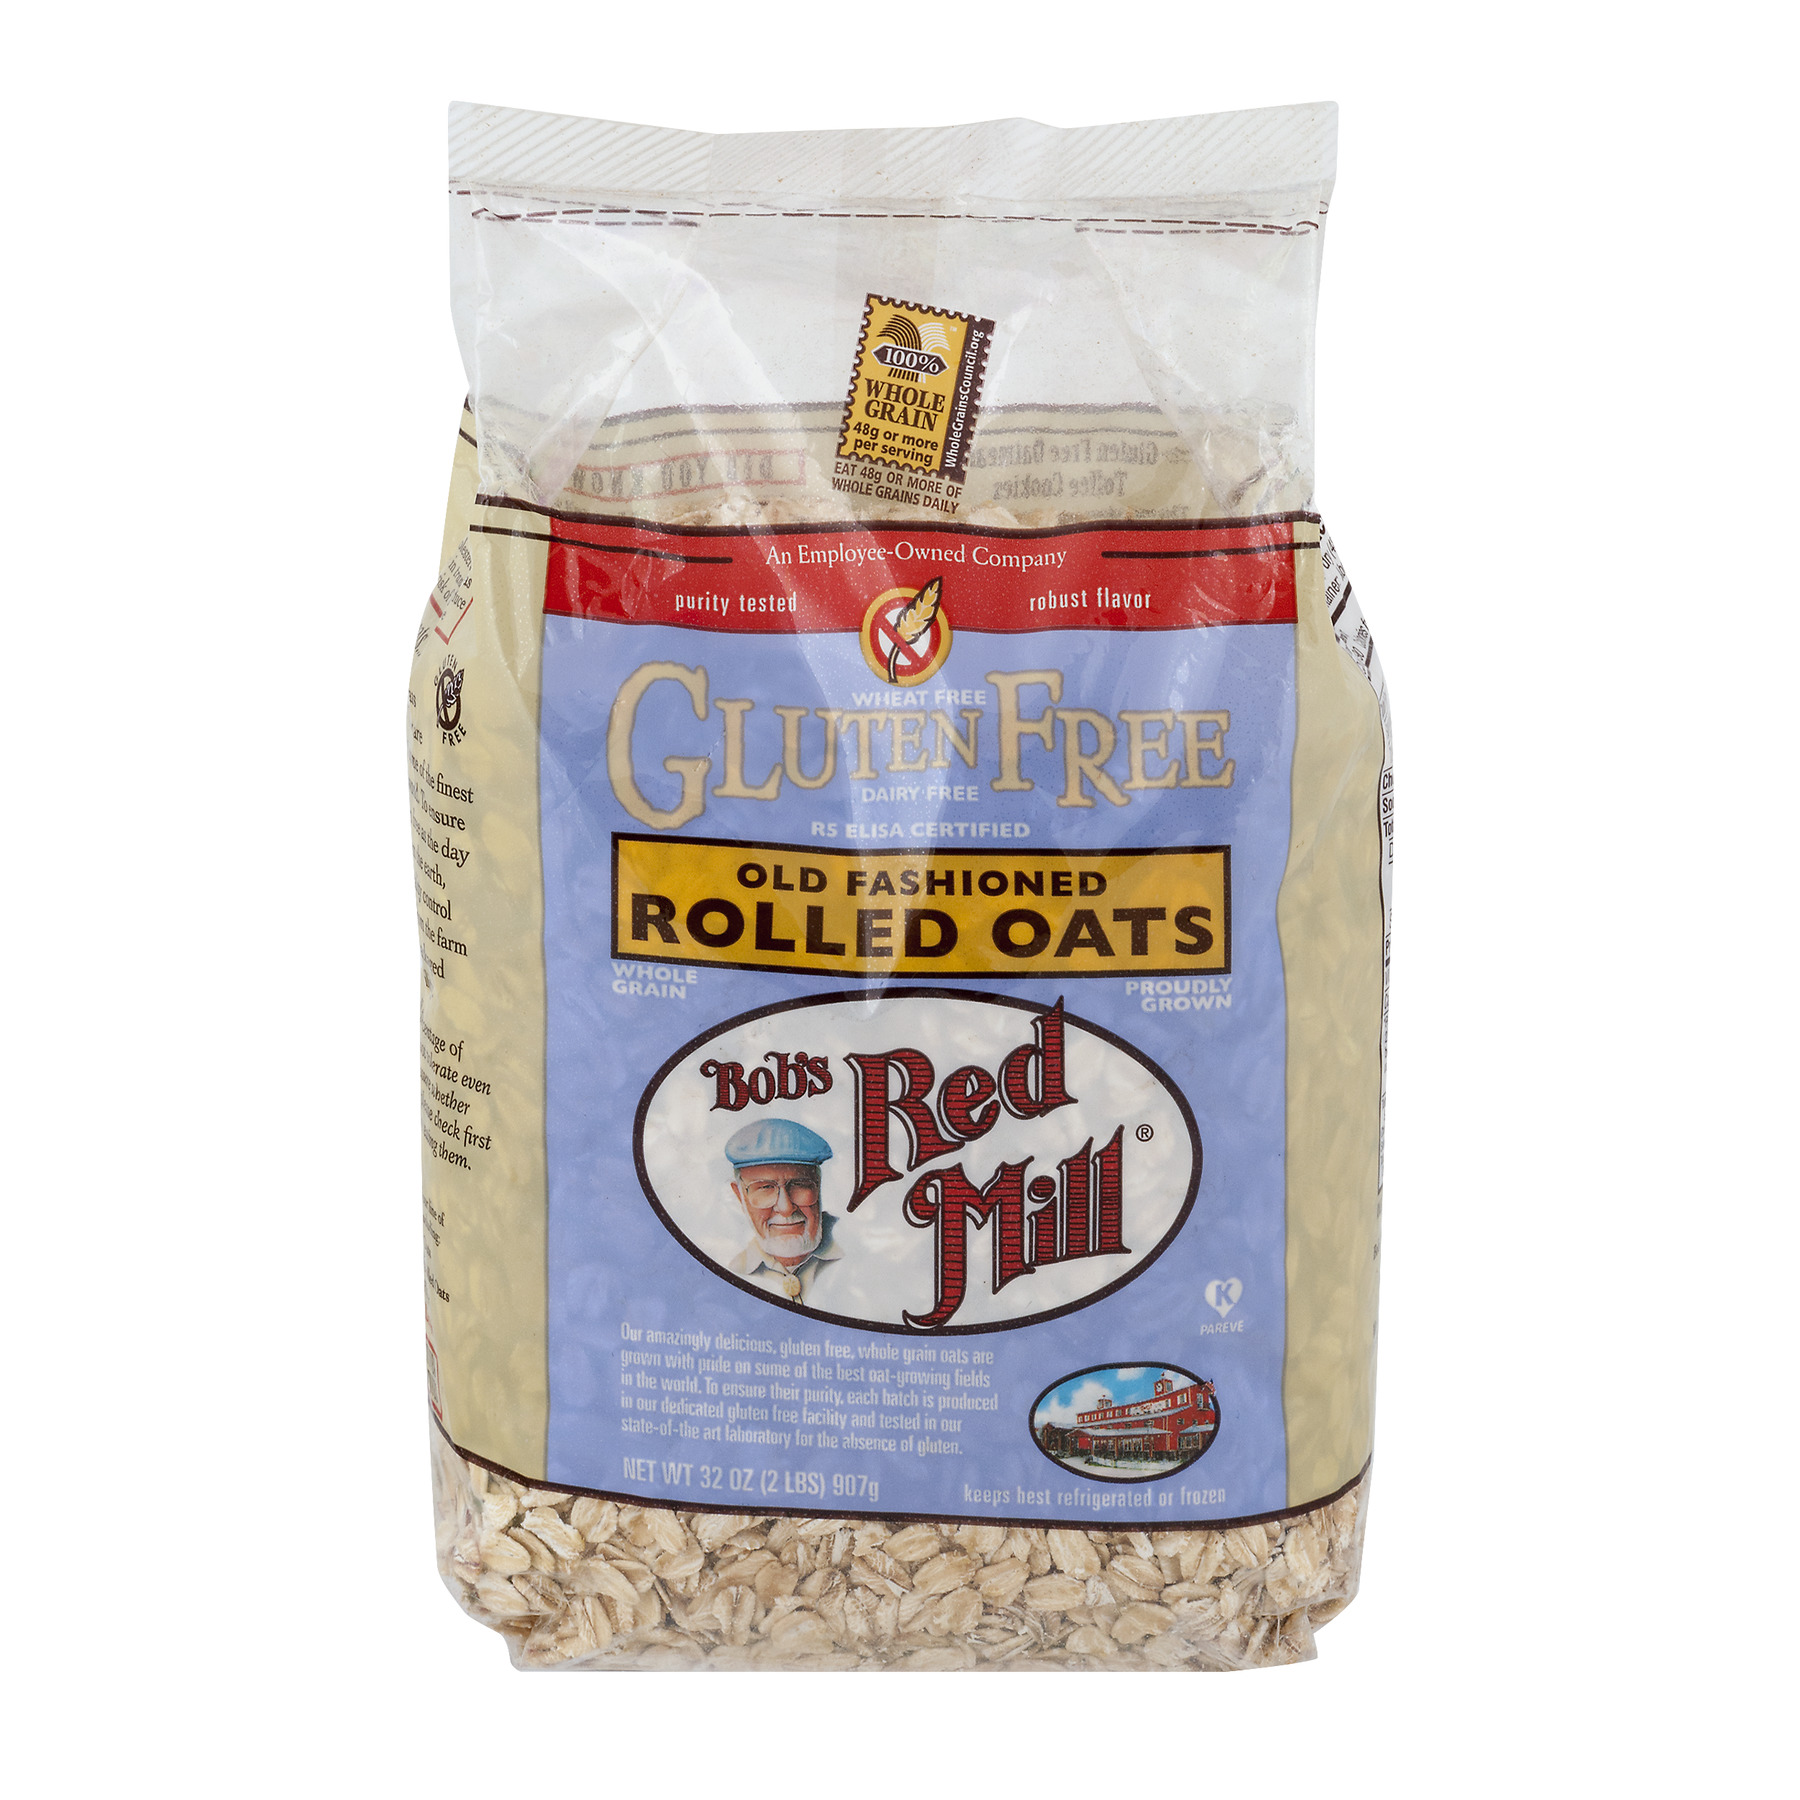 Bob's Red Mill Gluten Free Old Fashioned Rolled Oats, 32.0 OZ